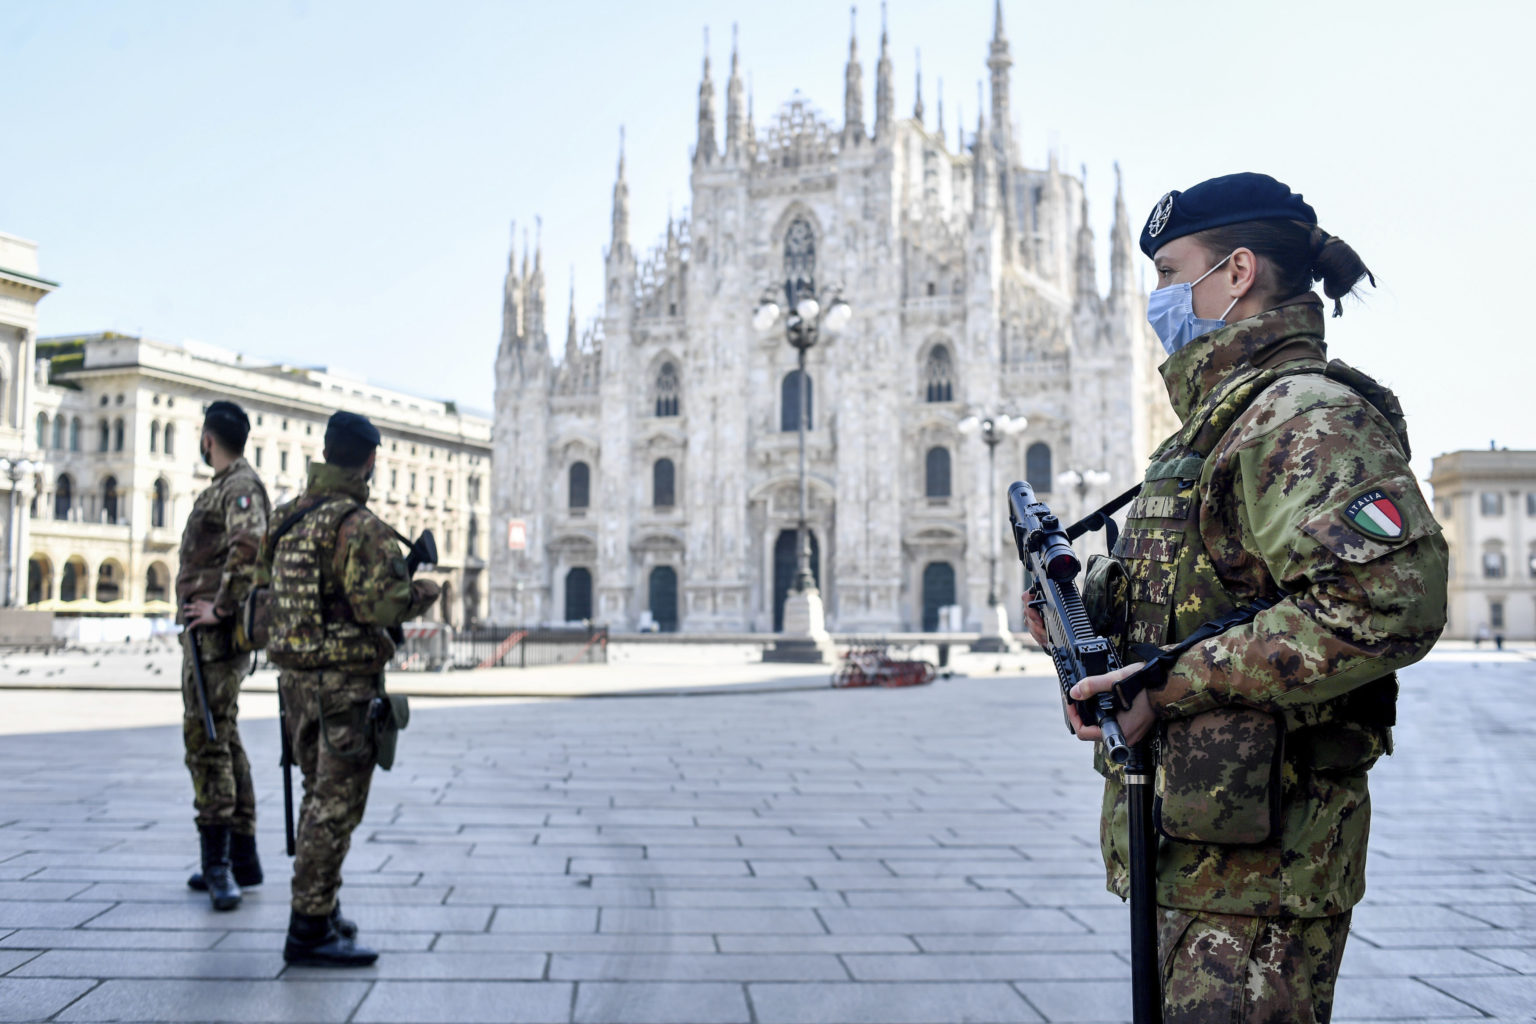 Soldiers patrol in front of the Duomo gothic cathedral in Milan, Italy, Sunday, April 5, 2020